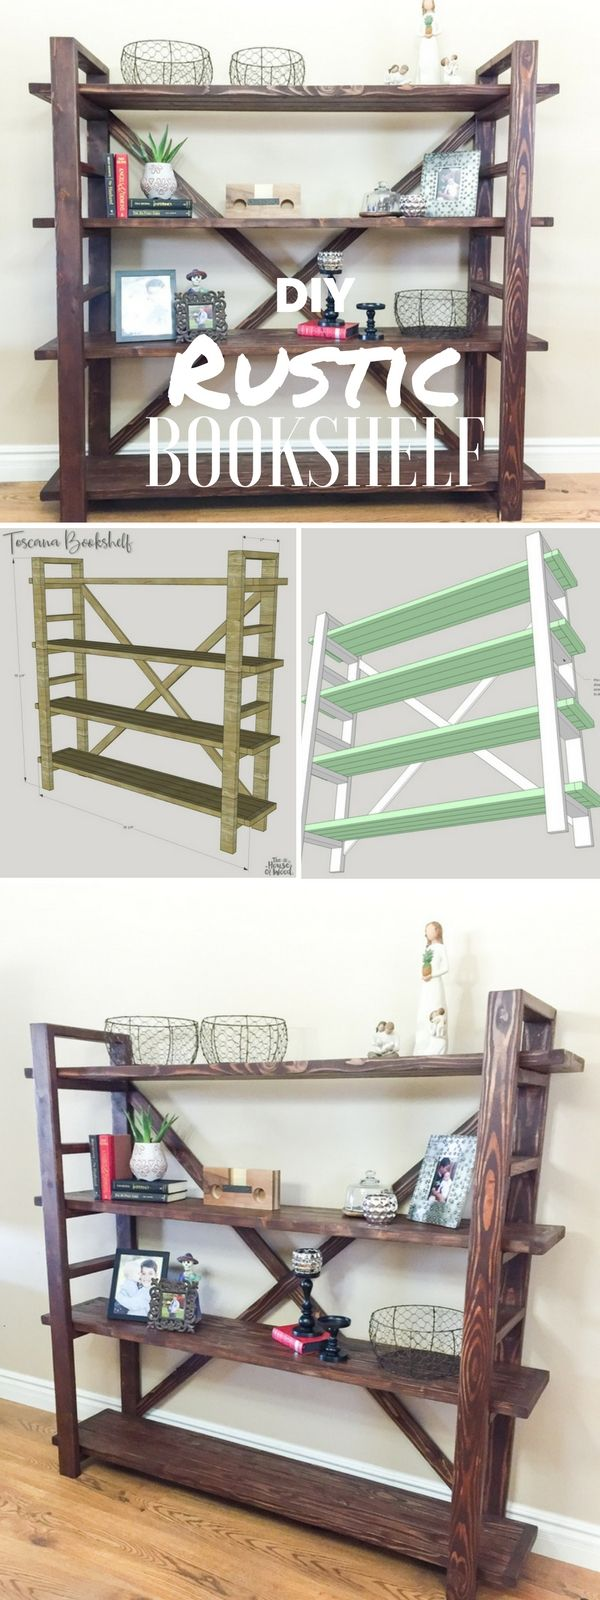 Check out the tutorial: #DIY Rustic Bookshelf @istandarddesign